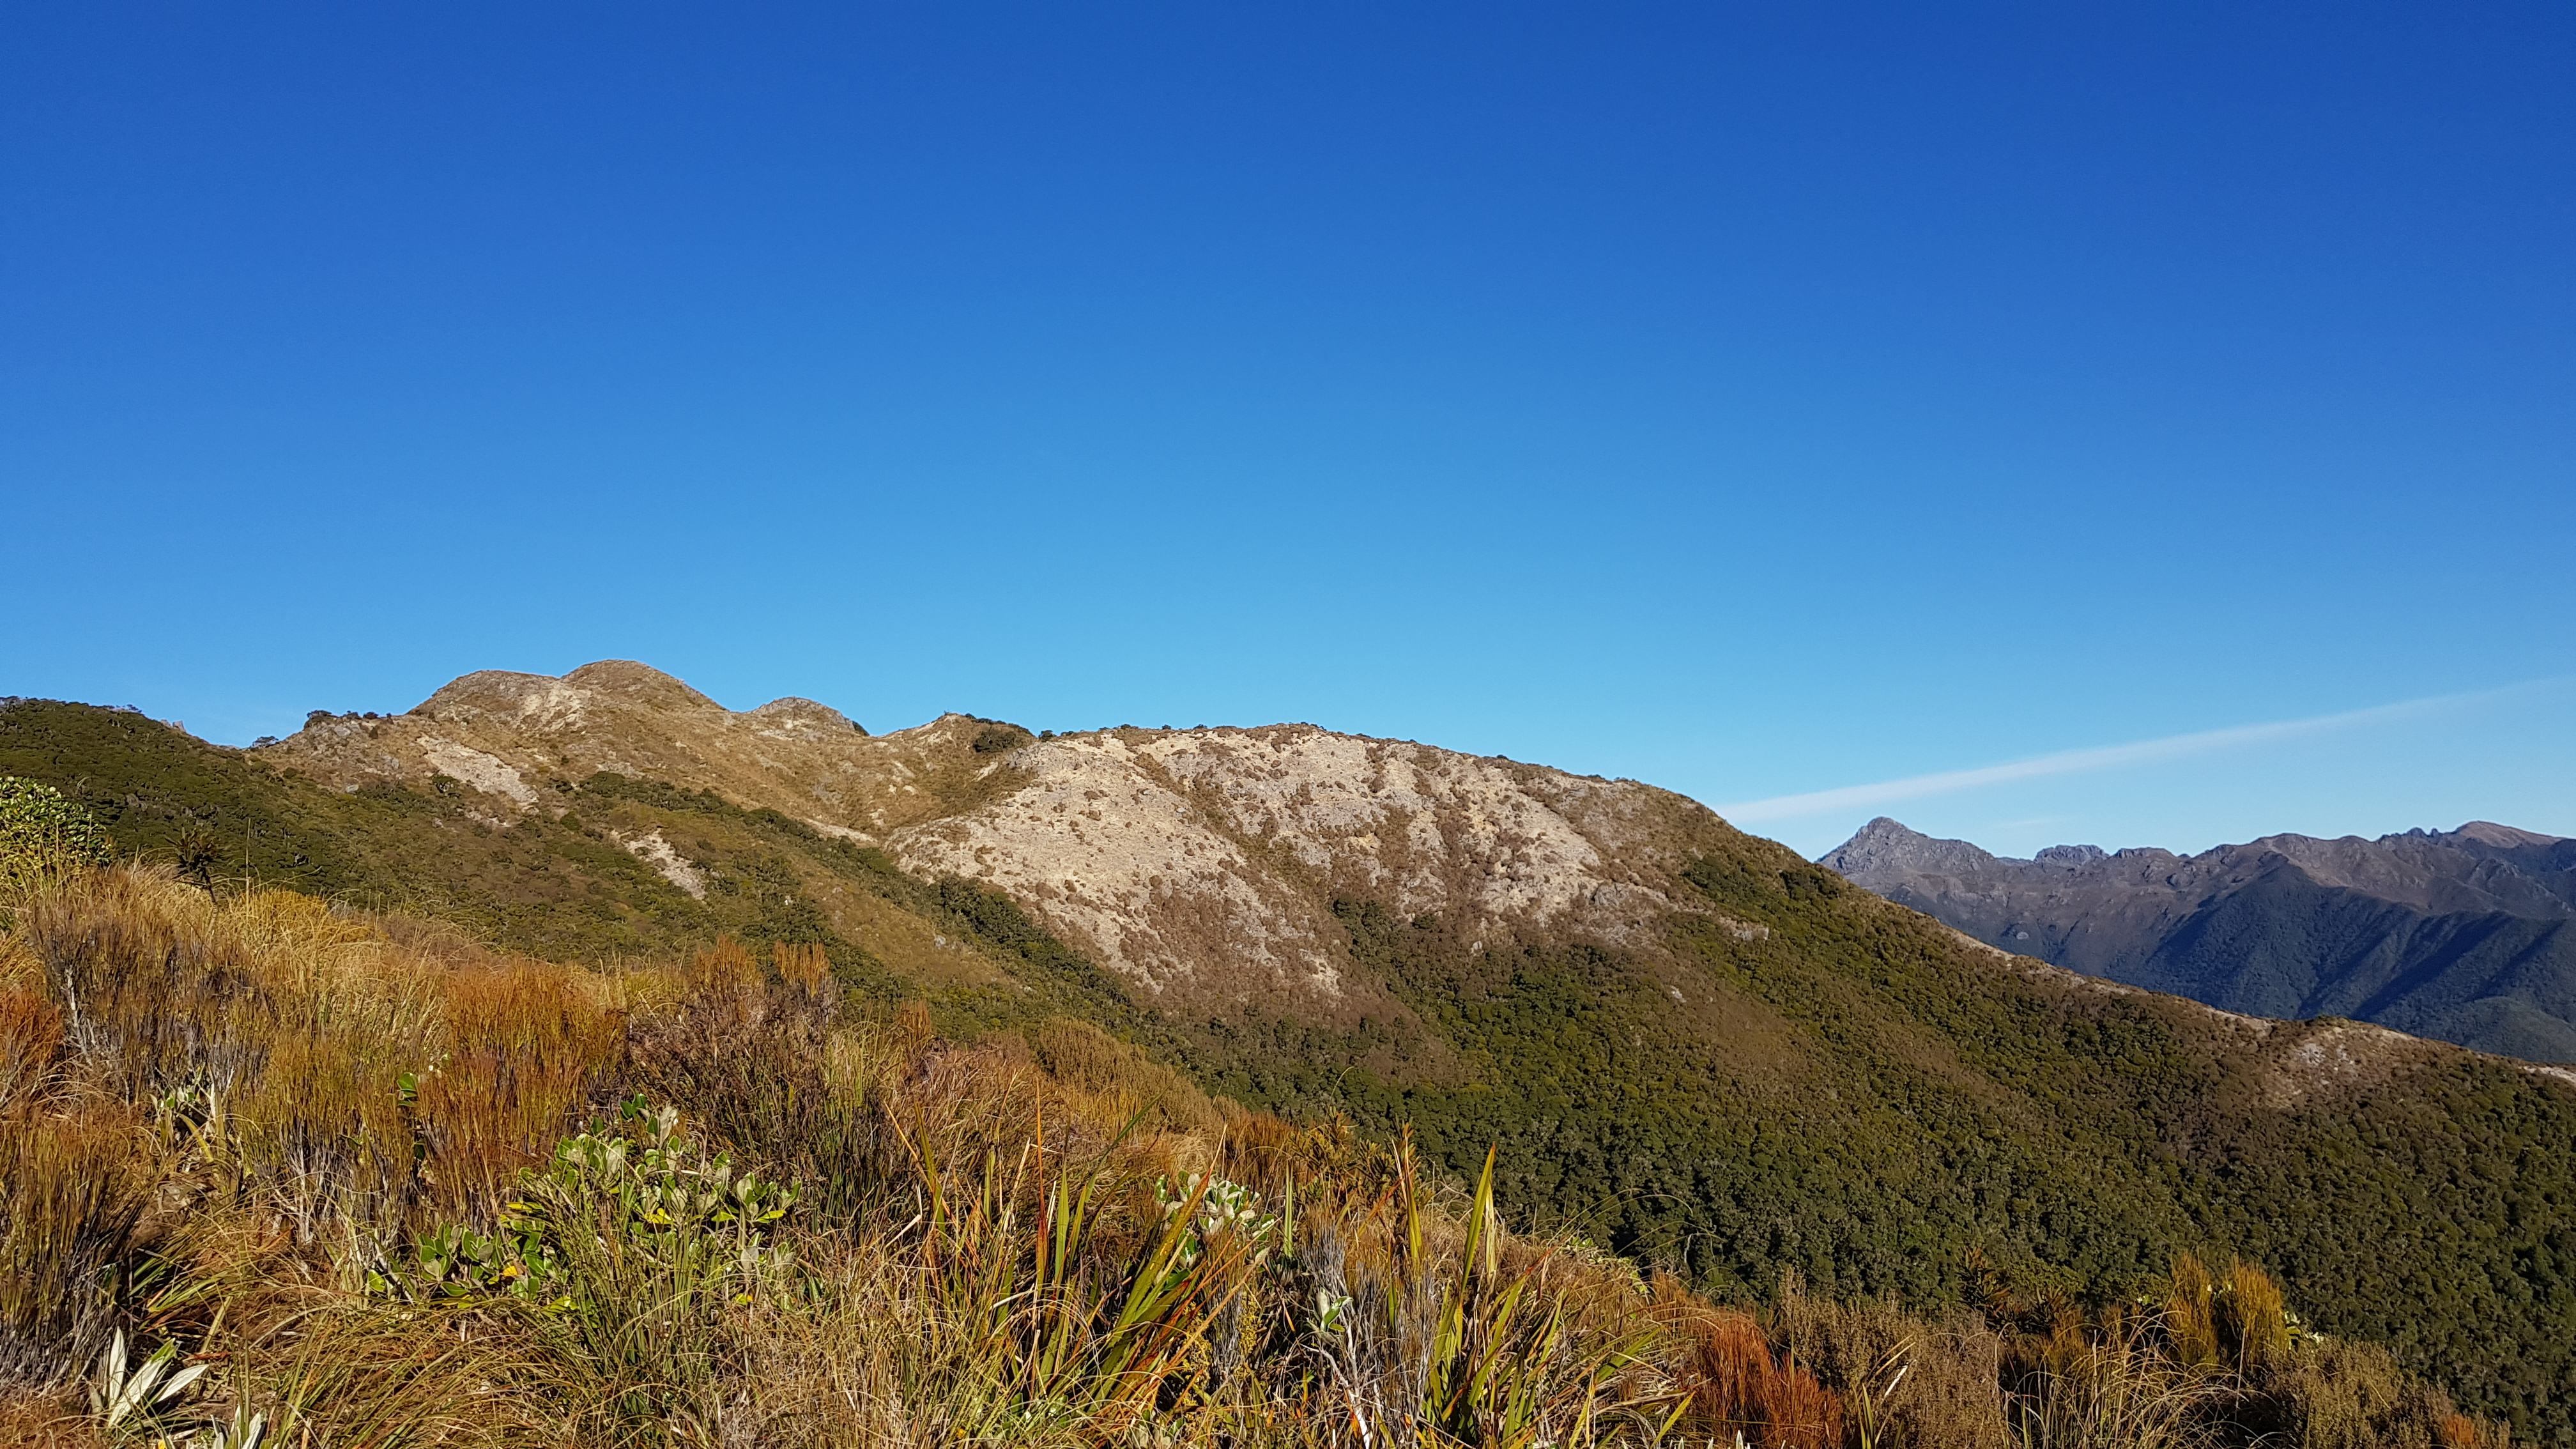 The start of the Paparoa Range from the Buckland Peaks track